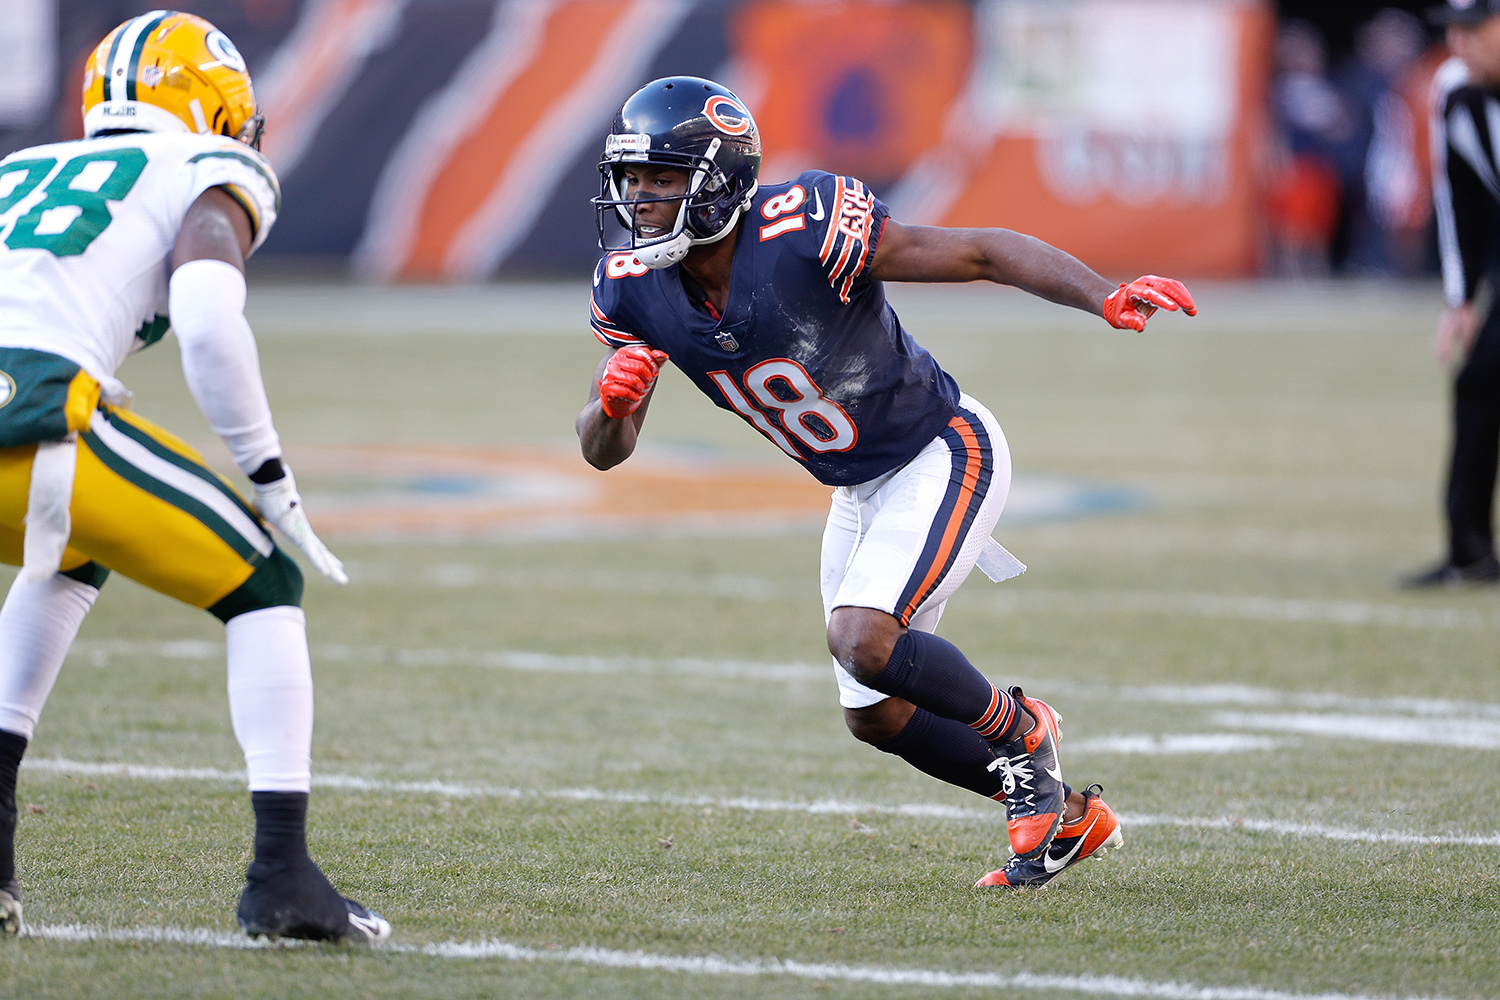 Taylor Gabriel and the Chicago Bears renew their longtime rivalry with the Green Bay Packers tonight in the NFL regular-season opener on NBC.